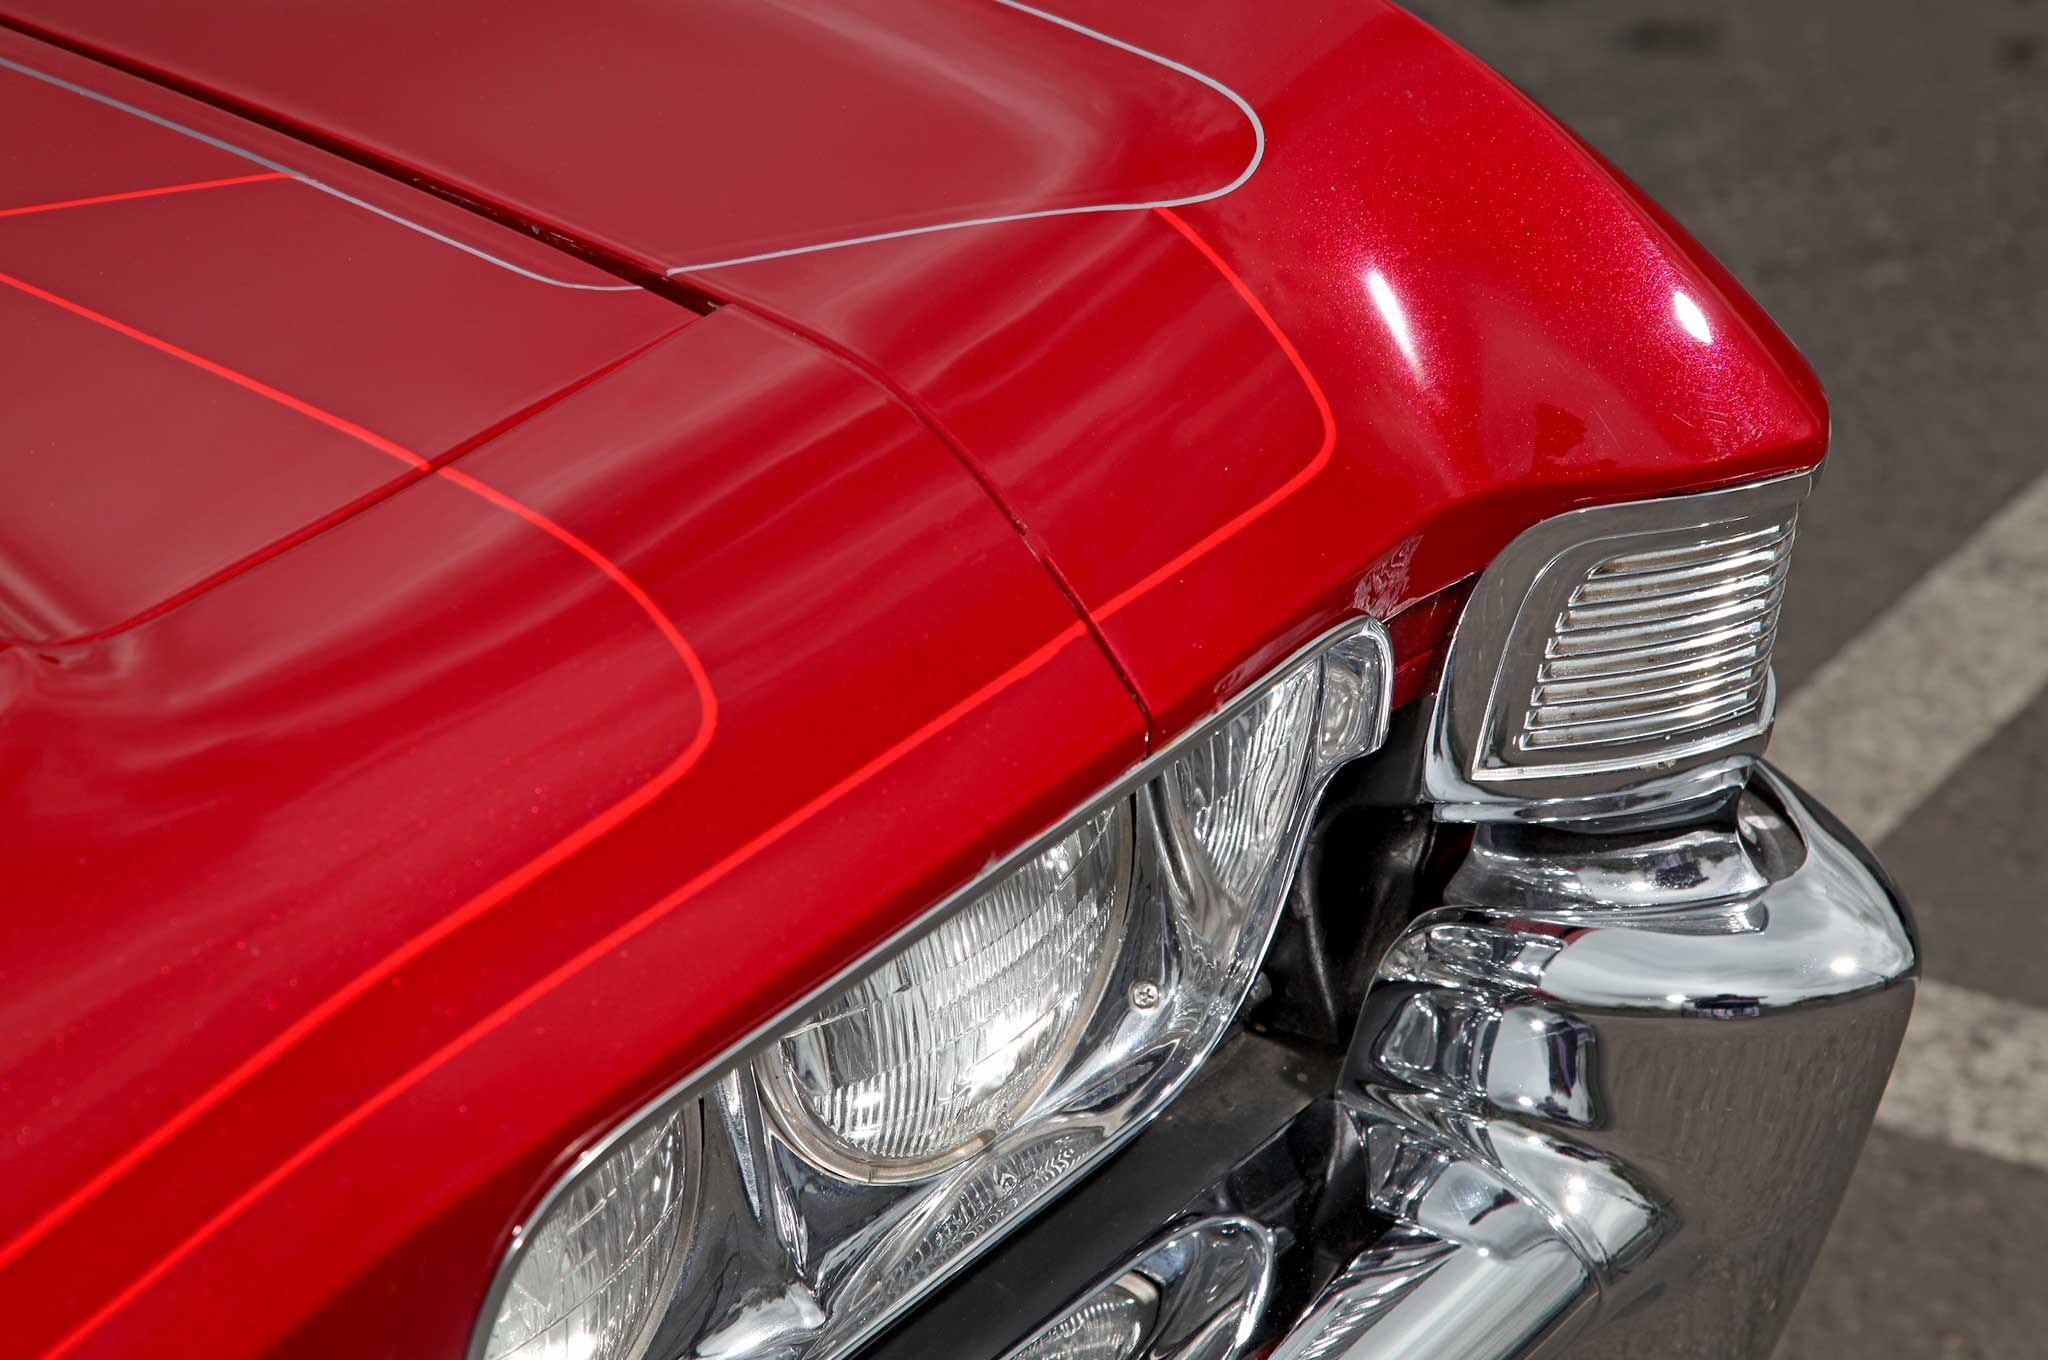 1968-chevrolet-impala-convertible-headlight